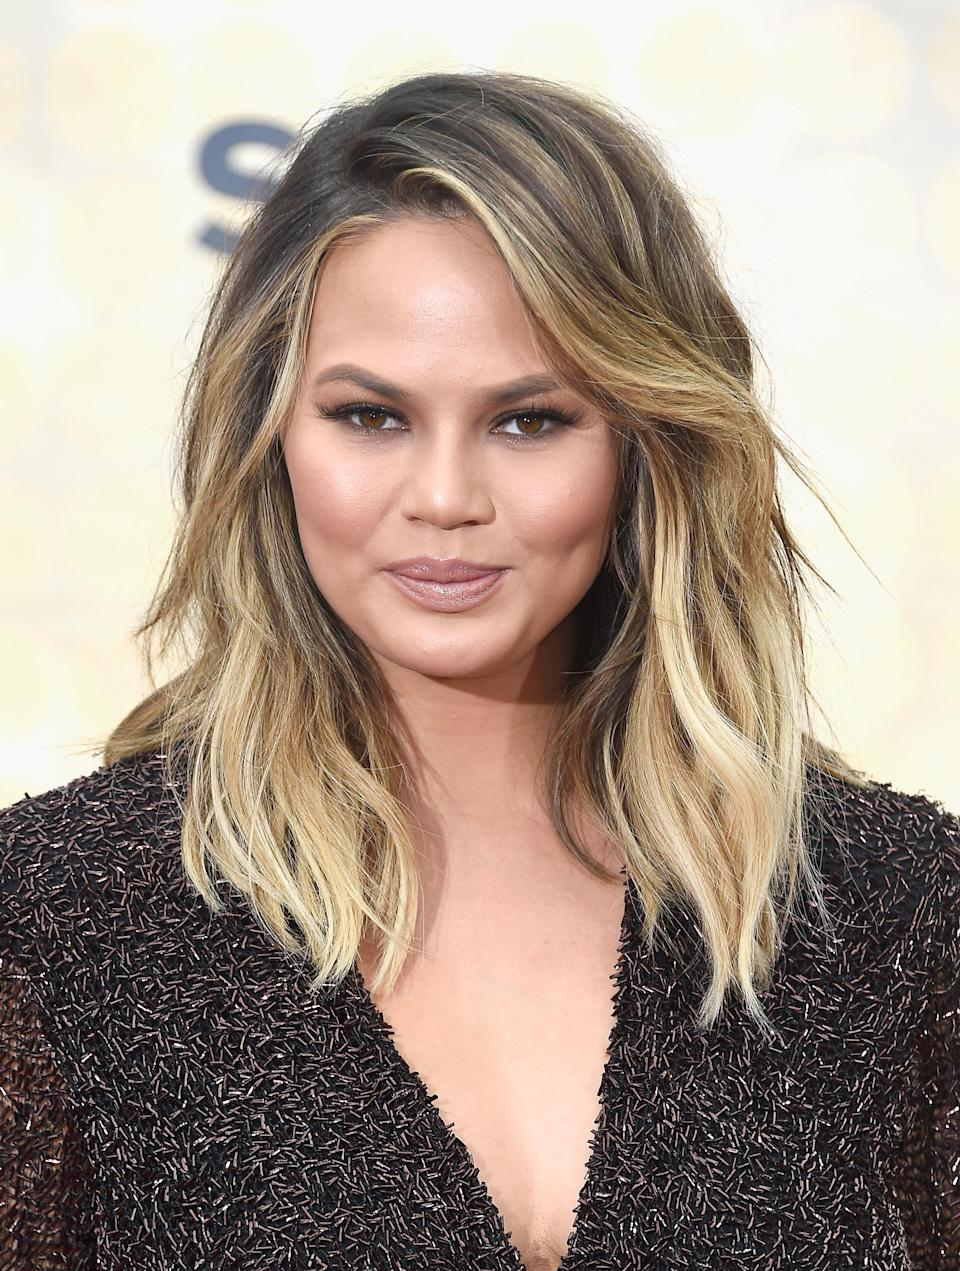 """<p>Teigen is a woman of many talents: model, cookbook author, Velveeta lover, and genius who once Tweeted """"I feel like even potato chips can be considered clean."""" As a true foodie, her indulgences are well documented on Insta: <a href=""""https://www.instagram.com/p/BC_PR8sJjaP/?hl=en"""" rel=""""nofollow noopener"""" target=""""_blank"""" data-ylk=""""slk:Shake Shack"""" class=""""link rapid-noclick-resp"""">Shake Shack</a>, <a href=""""https://www.instagram.com/p/78wmnLJjeQ/"""" rel=""""nofollow noopener"""" target=""""_blank"""" data-ylk=""""slk:Taco Bell"""" class=""""link rapid-noclick-resp"""">Taco Bell</a>, a visionary combination of <a href=""""https://www.instagram.com/p/9aUWqGJjfk/?hl=en"""" rel=""""nofollow noopener"""" target=""""_blank"""" data-ylk=""""slk:Cap'n Crunch and Fruity Pebbles"""" class=""""link rapid-noclick-resp"""">Cap'n Crunch and Fruity Pebbles</a>, <a href=""""https://www.instagram.com/p/8a8gYoJjRe/?hl=en"""" rel=""""nofollow noopener"""" target=""""_blank"""" data-ylk=""""slk:McDonald's"""" class=""""link rapid-noclick-resp"""">McDonald's</a>, <a href=""""https://www.instagram.com/p/5eqaXwpjWR/"""" rel=""""nofollow noopener"""" target=""""_blank"""" data-ylk=""""slk:pizza"""" class=""""link rapid-noclick-resp"""">pizza</a>, and <a href=""""https://www.instagram.com/p/8b770EJjRb/?hl=en"""" rel=""""nofollow noopener"""" target=""""_blank"""" data-ylk=""""slk:cinnamon rolls"""" class=""""link rapid-noclick-resp"""">cinnamon rolls</a> to name a few. """"There's a balance with anything,"""" <a href=""""http://www.delish.com/food/a43466/chrissy-teigen-diet/"""" rel=""""nofollow noopener"""" target=""""_blank"""" data-ylk=""""slk:Teigen, who admits to eating fast food a few times a week, told Delish"""" class=""""link rapid-noclick-resp"""">Teigen, who admits to eating fast food a few times a week, told Delish</a>. """"When I cook, everything is organic and very clean; I'm meticulous and kind of insane about it. But sometimes you just want a Doritos Locos Taco<span>.""""</span></p>"""